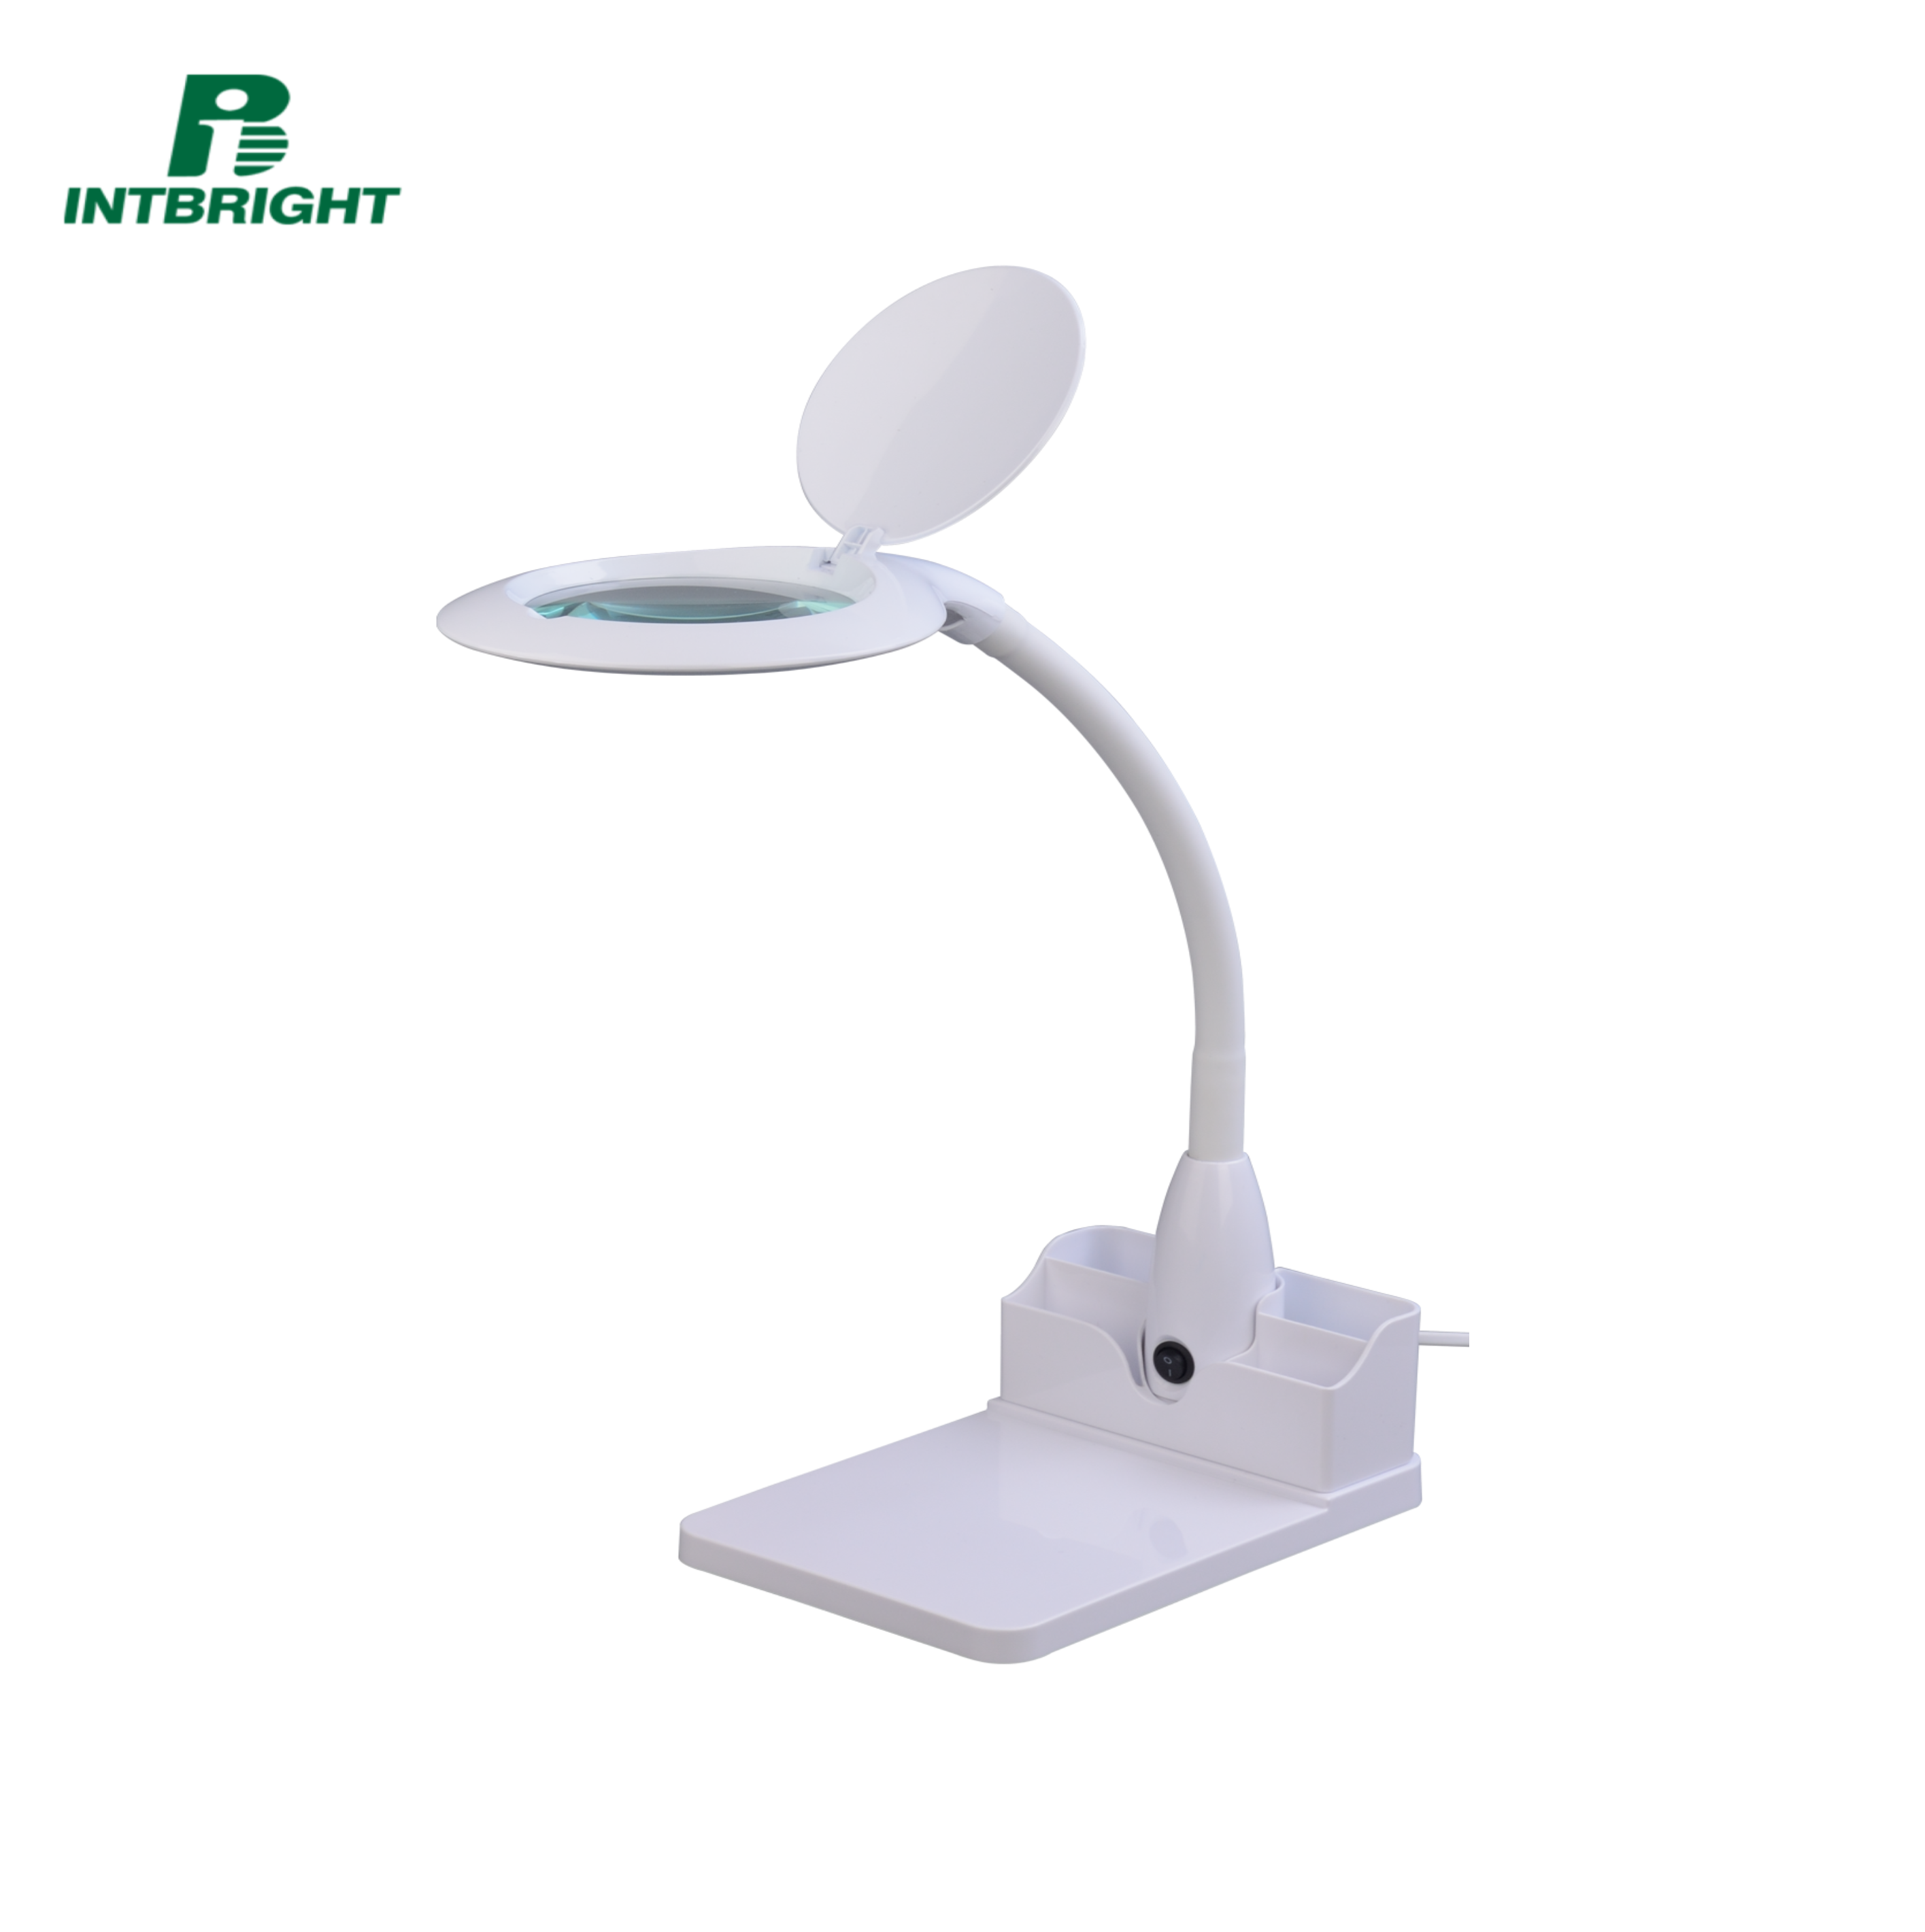 Hot-selling magnifying lamp led magnifier lamp beauty lash extension lampes with magnifier light for reading lab working